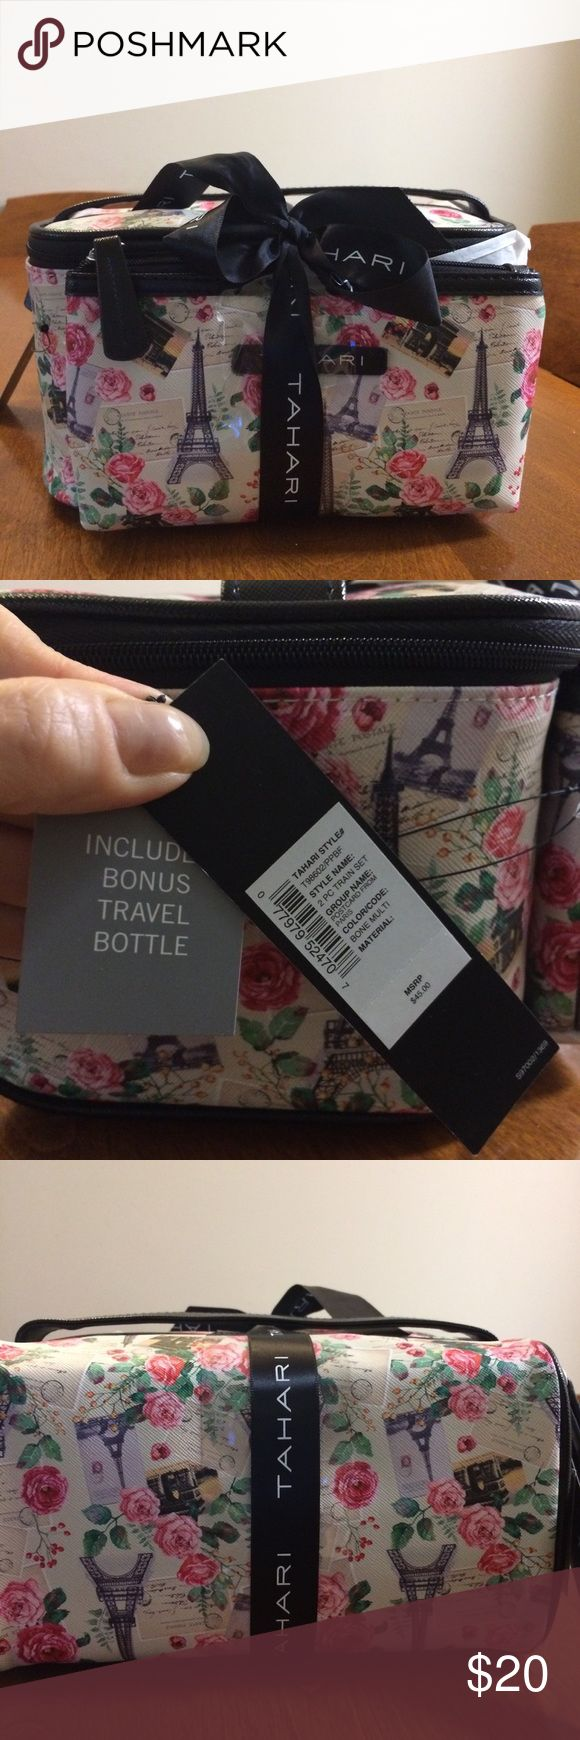 "NWT Tahari toiletry/cosmetic bag set Brand new, never opened. Large sized toiletry travel set. Comes with small cosmetic bag and bonus travel bottle. Cute Paris theme design with black accents.  Bag dimensions- large bag- L 9"", W 4.5"", H 5"".  Small bag- L 7.5"", H 4.25 "" Tahari Bags Cosmetic Bags & Cases"